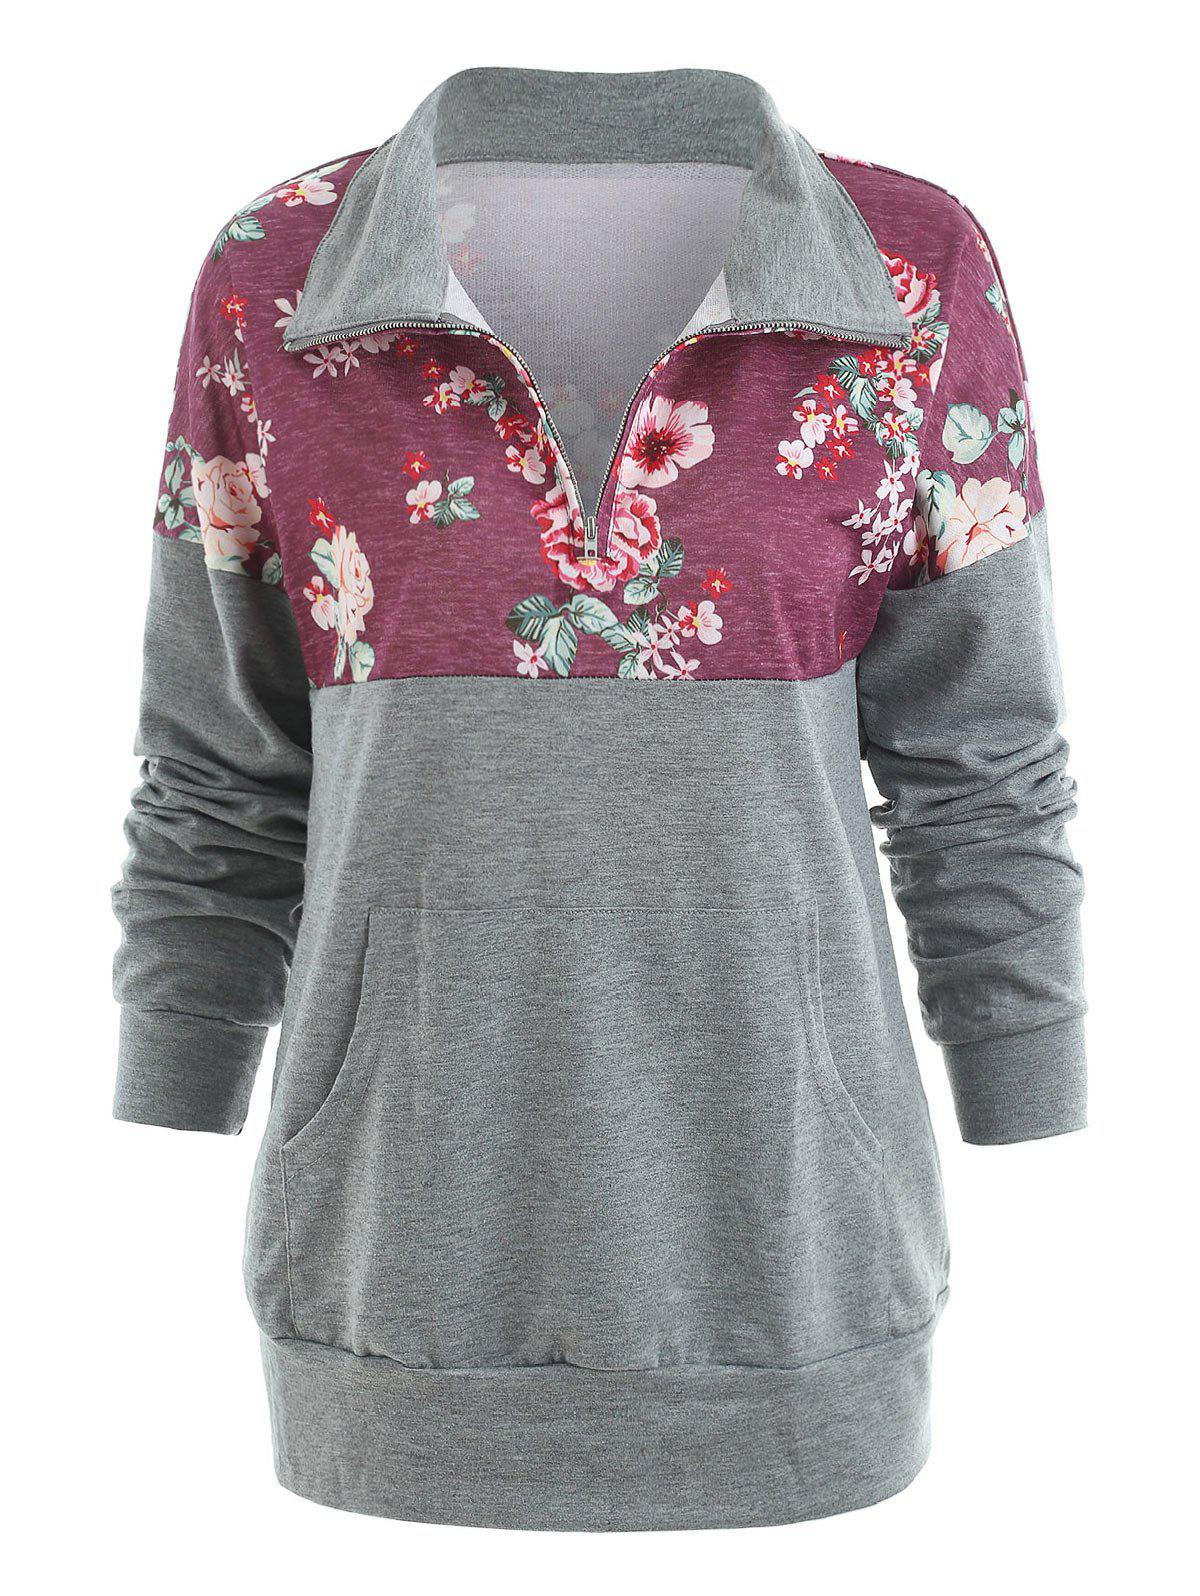 Half Zip Floral Pocket Sweatshirt - BASHFUL PINK S